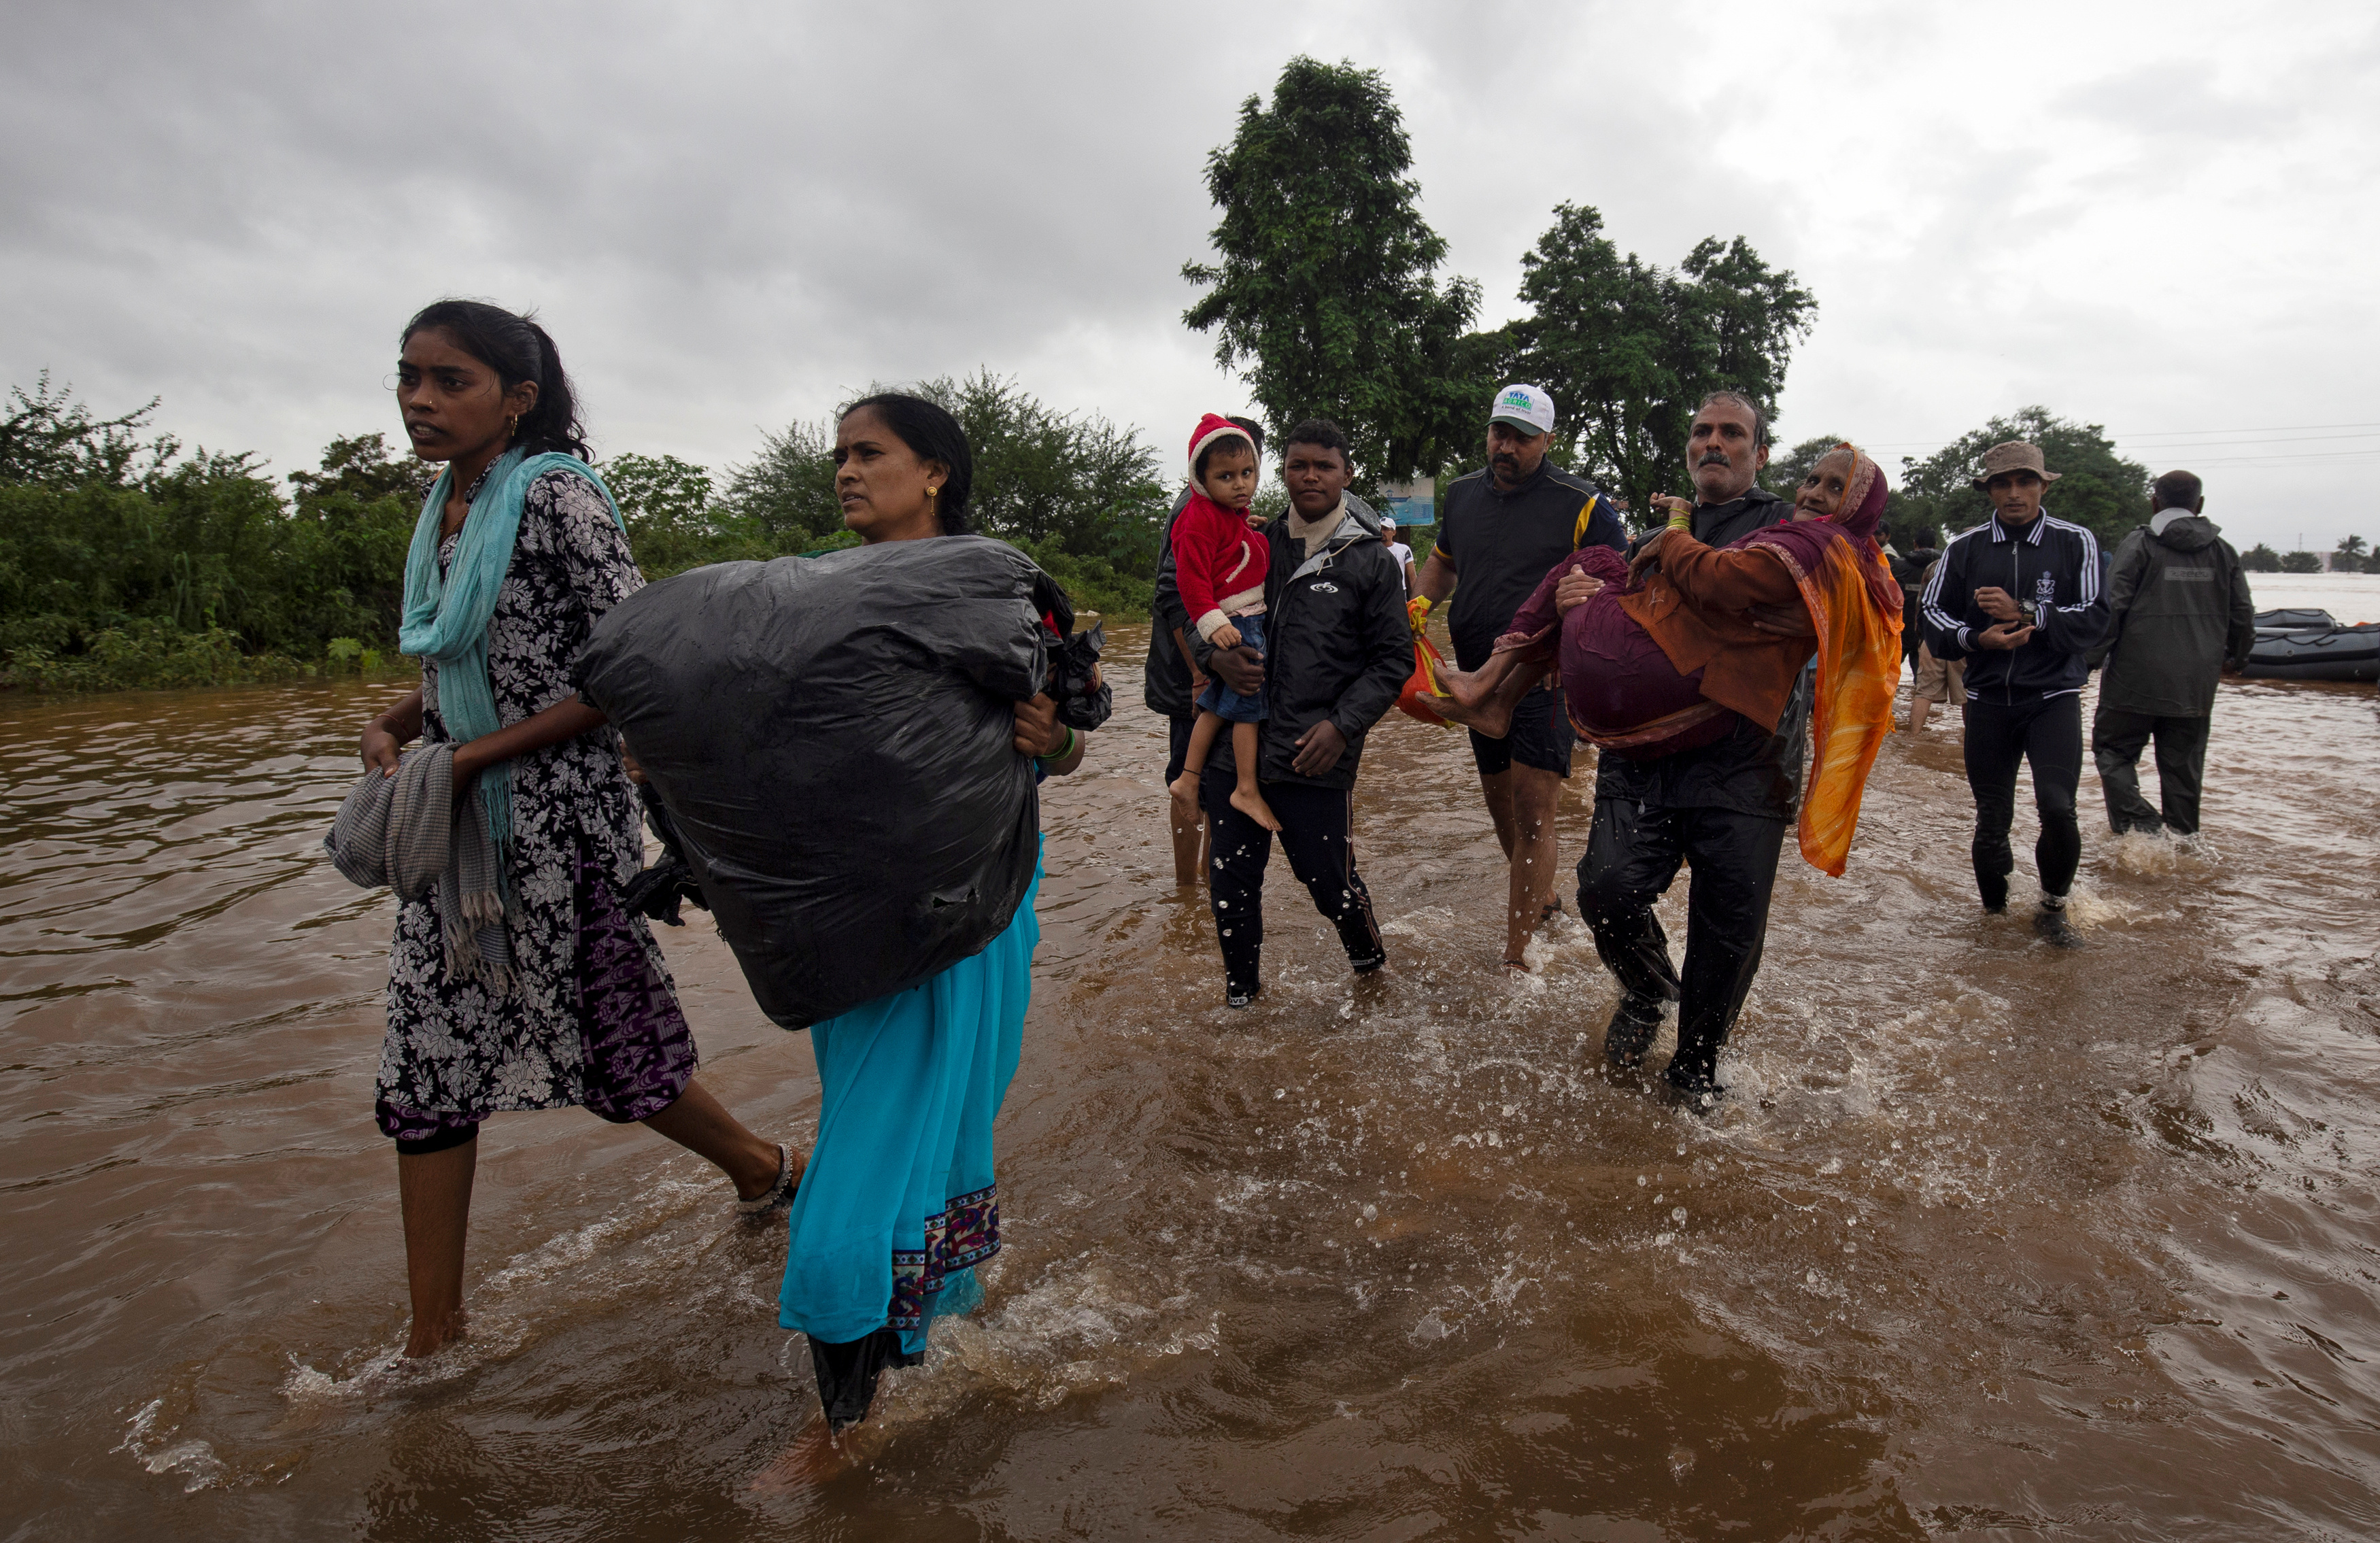 Flood-affected people are evacuated to a safer place after heavy rains in Kolhapur in the western state of Maharashtra, India, August 8, 2019. REUTERS/Abhijeet Gurjar